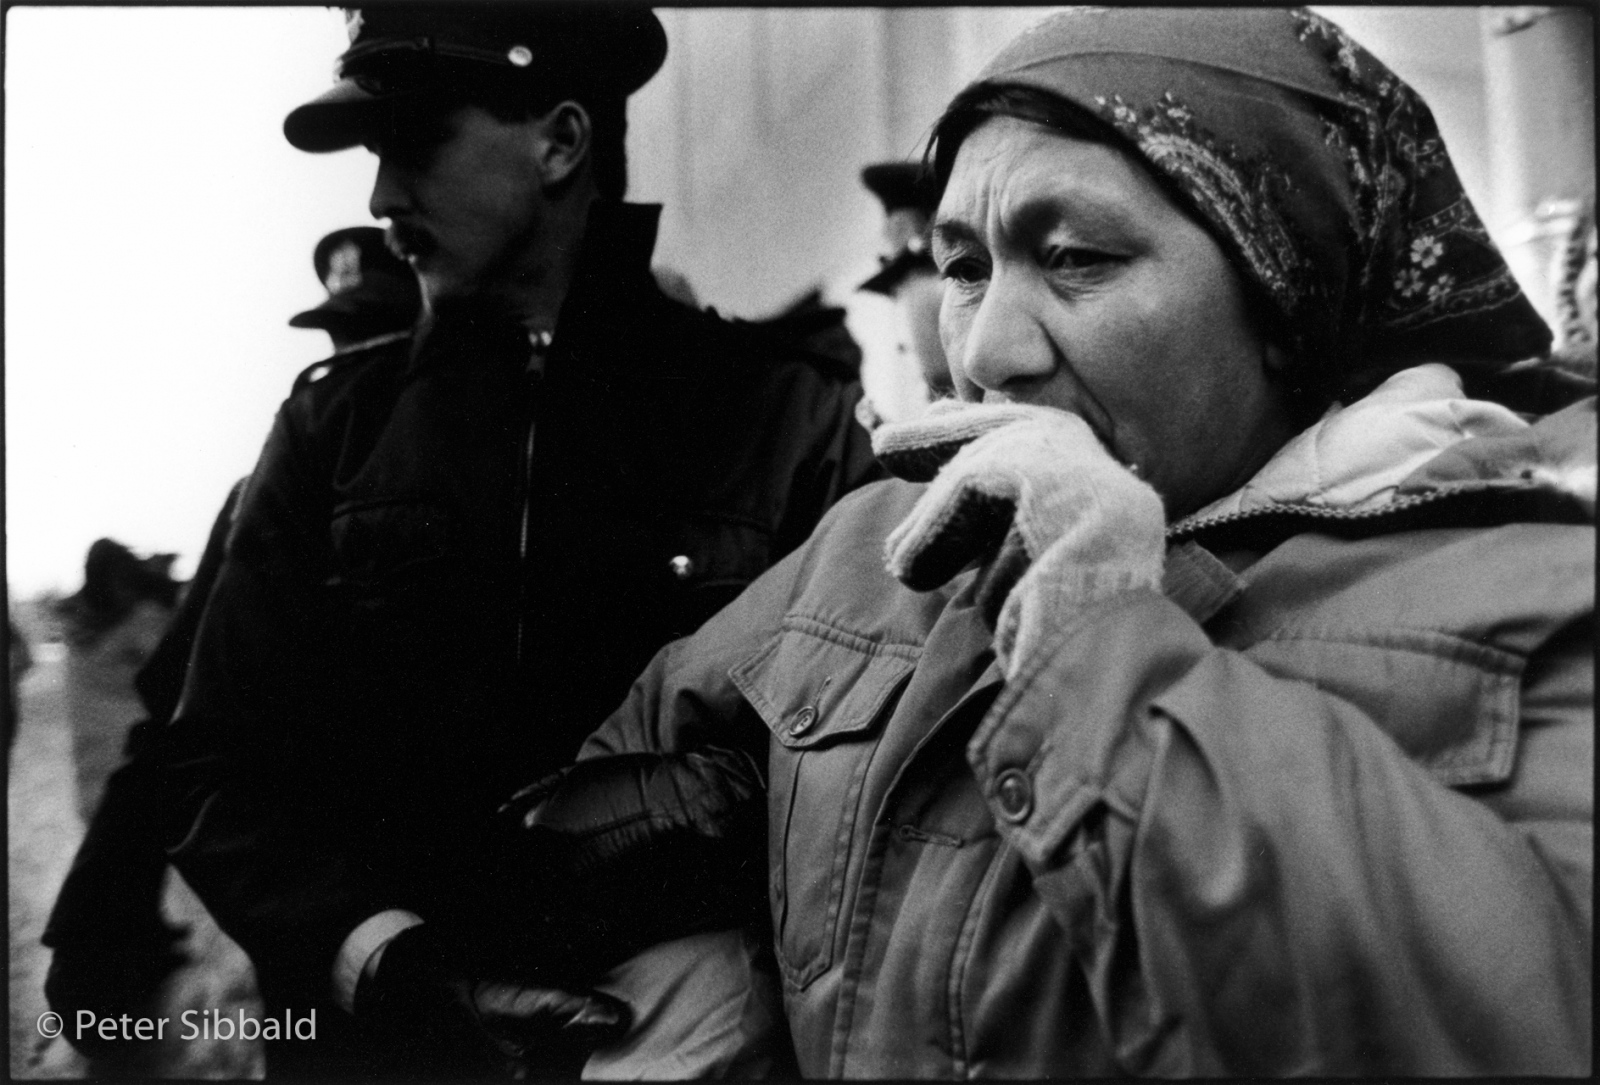 Ottawa, Canada. The Nation's Capital Three days after her three month walk, Elizabeth Penashue is arrested for blocking employee access to the Department of National Defence Headquarters during a Remembrance Day civil disobedience action protesting low-level flight training over Nitassinan. Copyright Peter Sibbald, 1990.